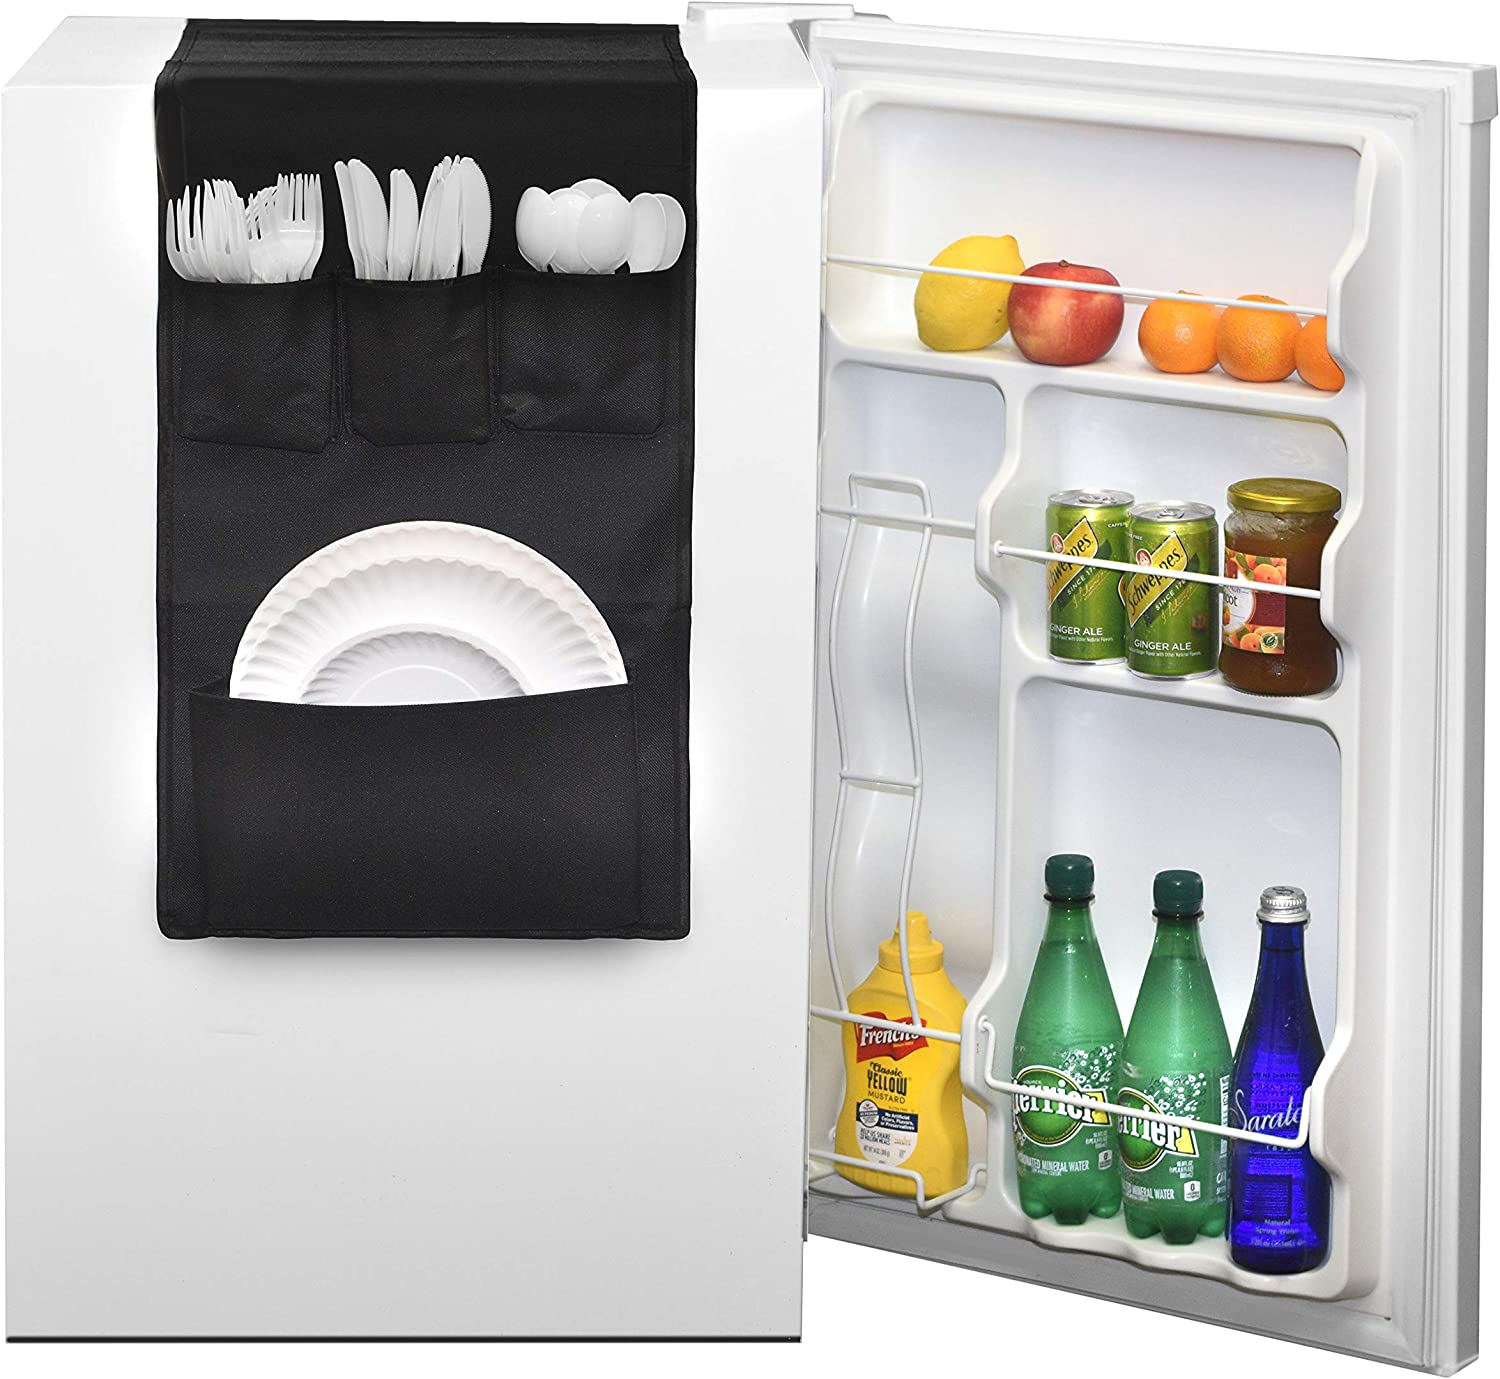 Classic Design - Over the Door Pantry Closet Organizer, Dorm and office Over the Fridge Caddy Organizer, Storage and Paper Goods Organizer (Black)